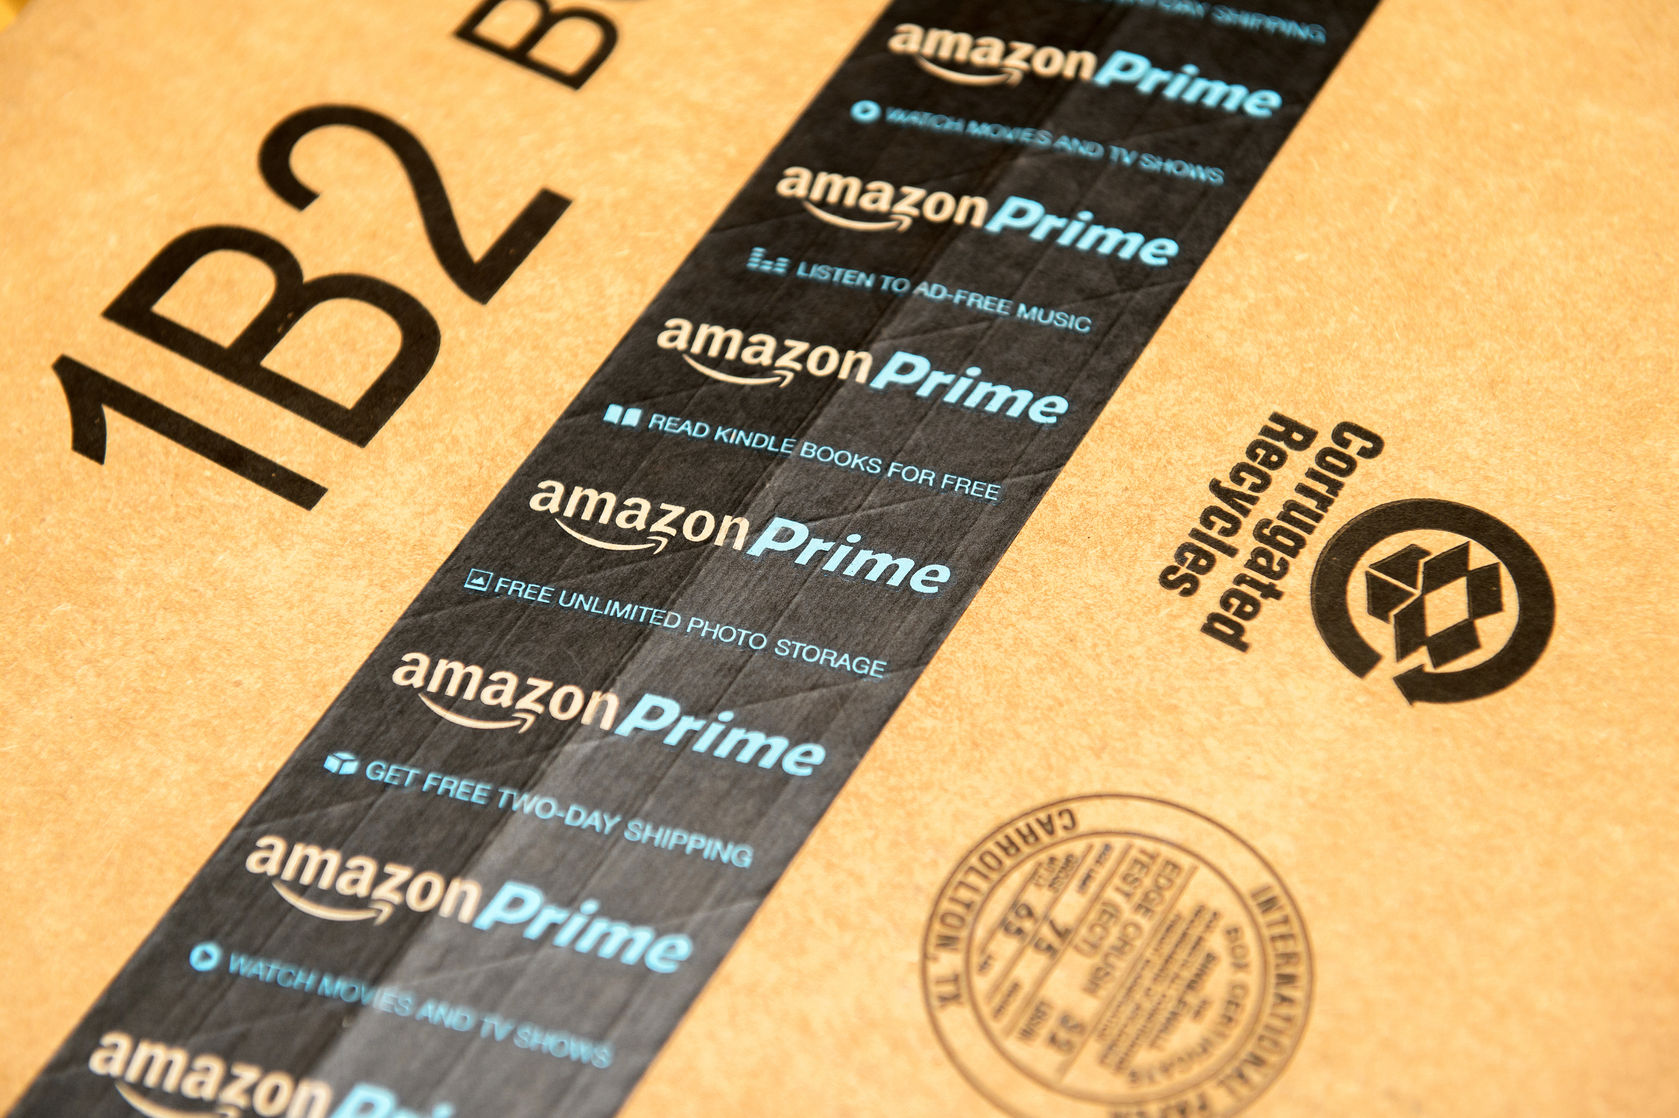 sprint customers now can get 60 days of amazon prime for free